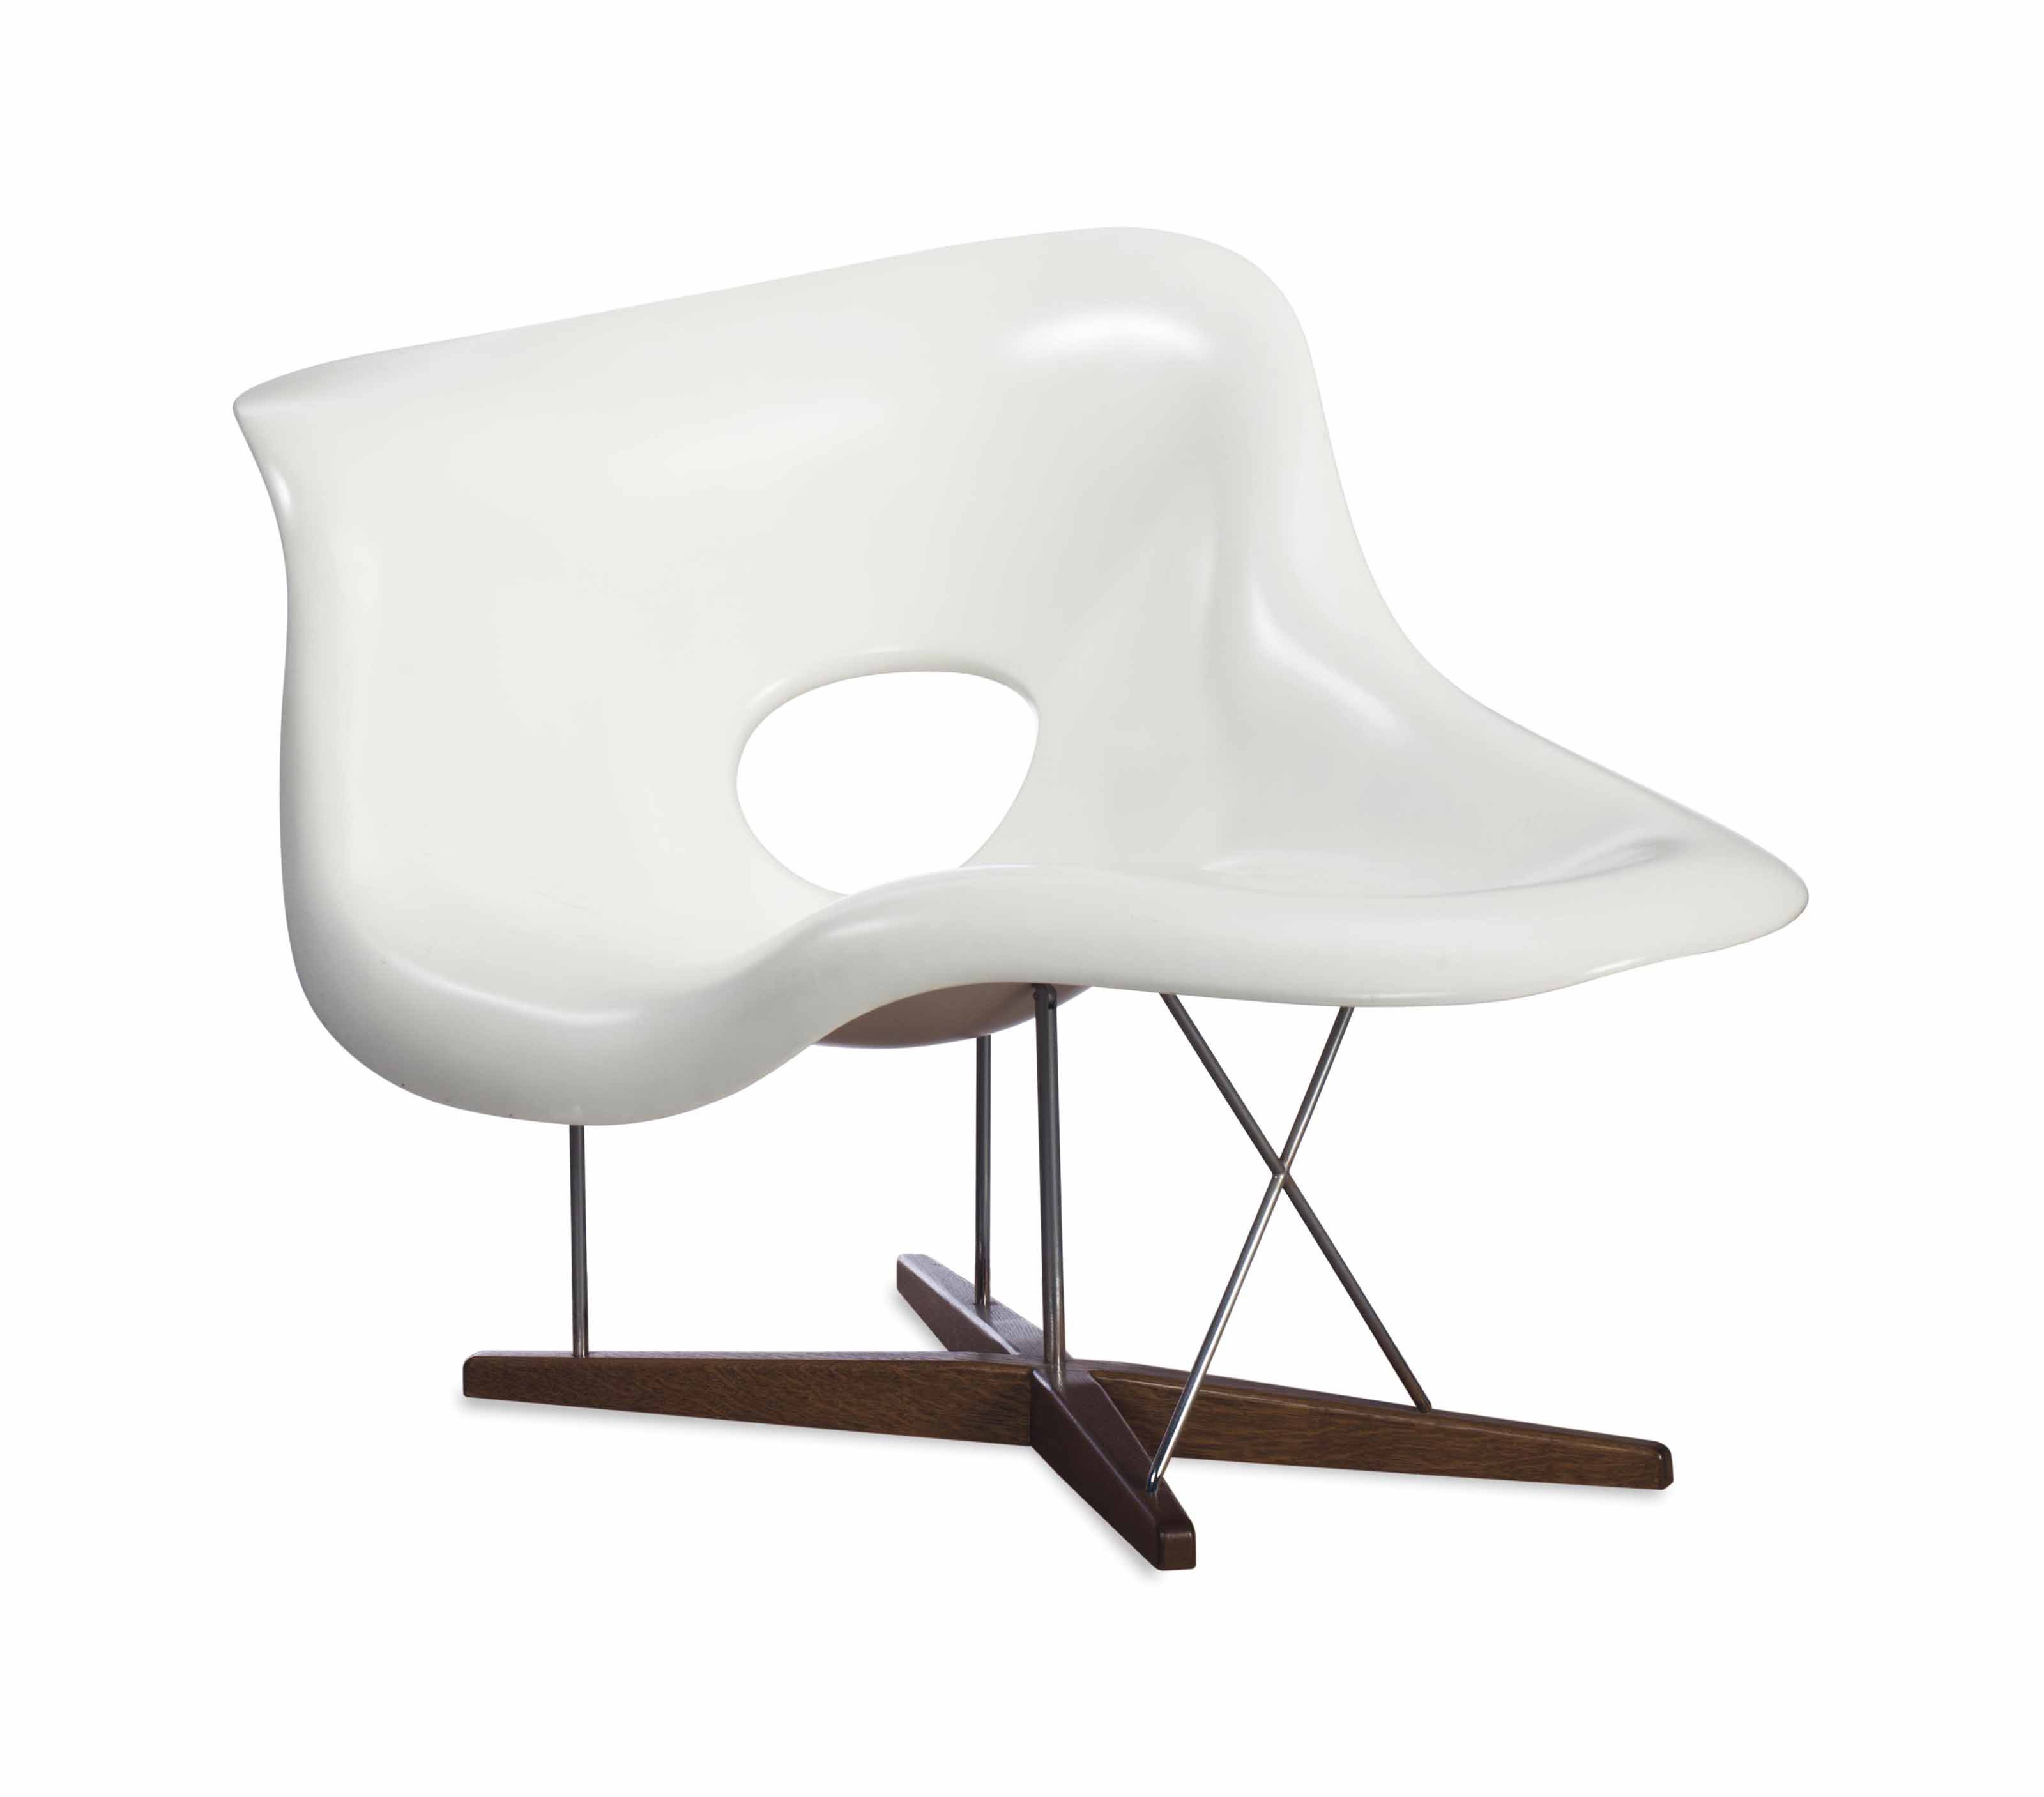 a white fiberglass aluminum and oak 39 la chaise 39 lounge chair designed by charles and ray. Black Bedroom Furniture Sets. Home Design Ideas